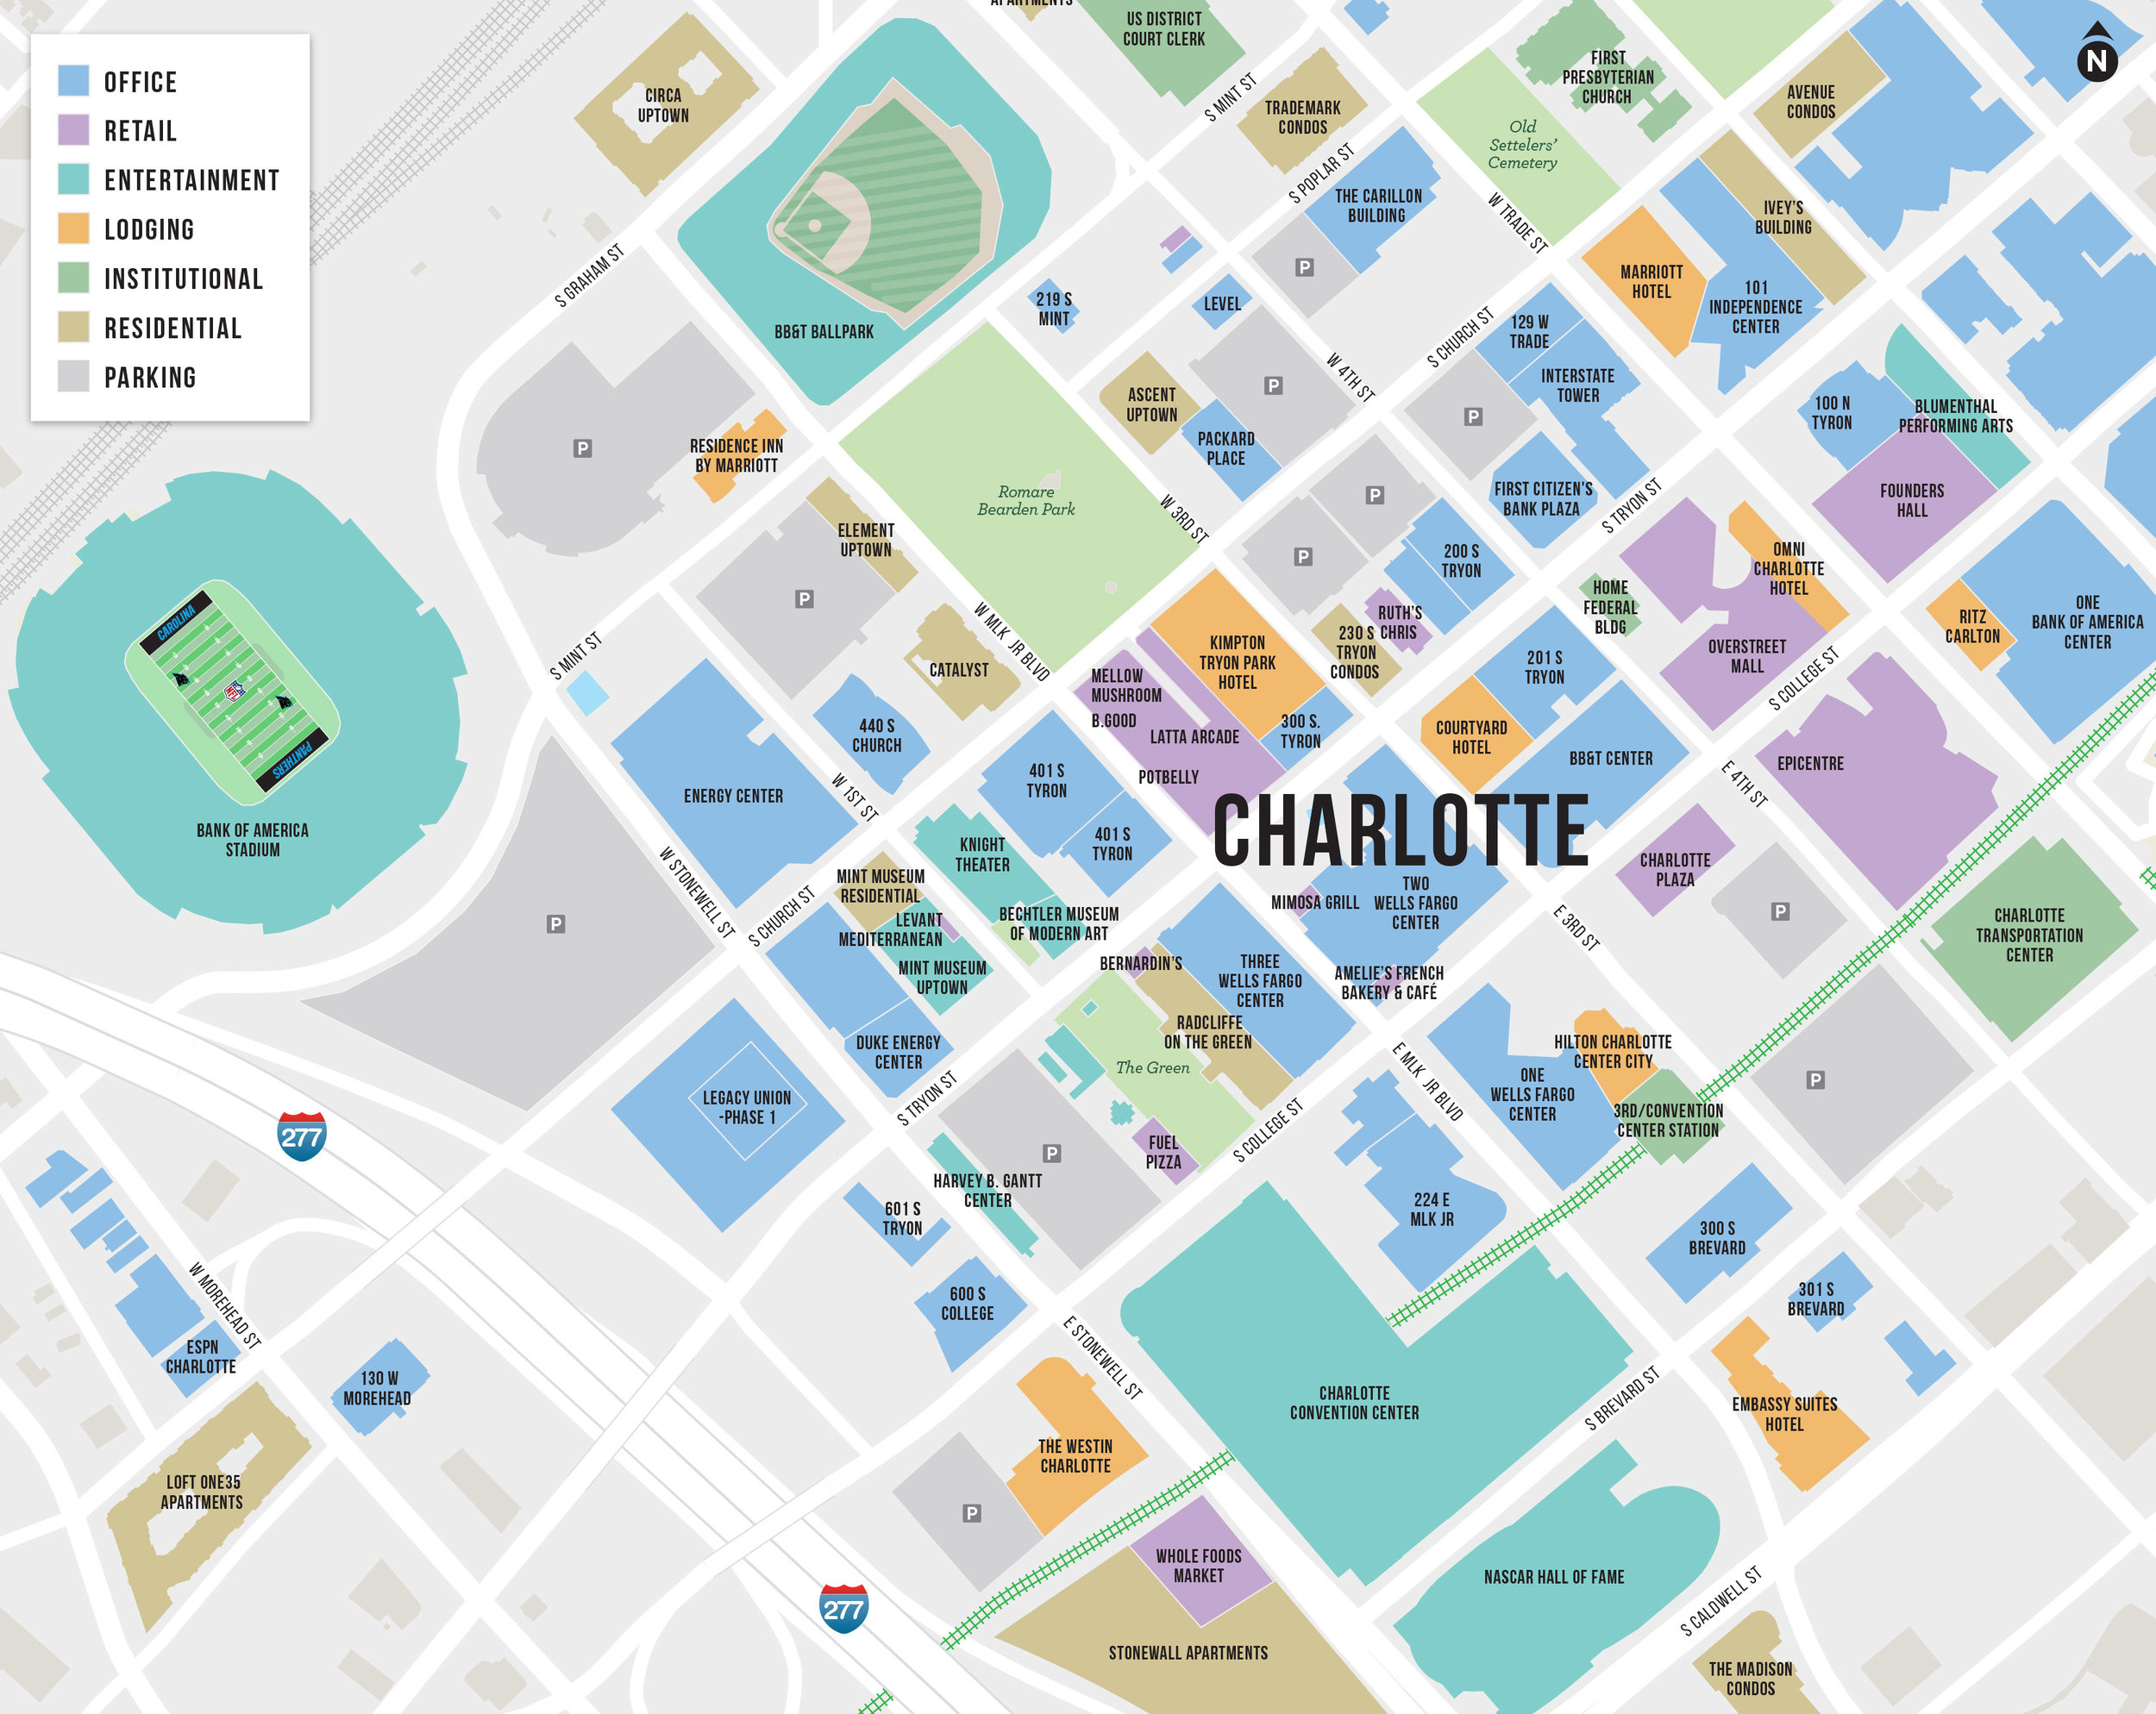 charlotte building detail map.jpg